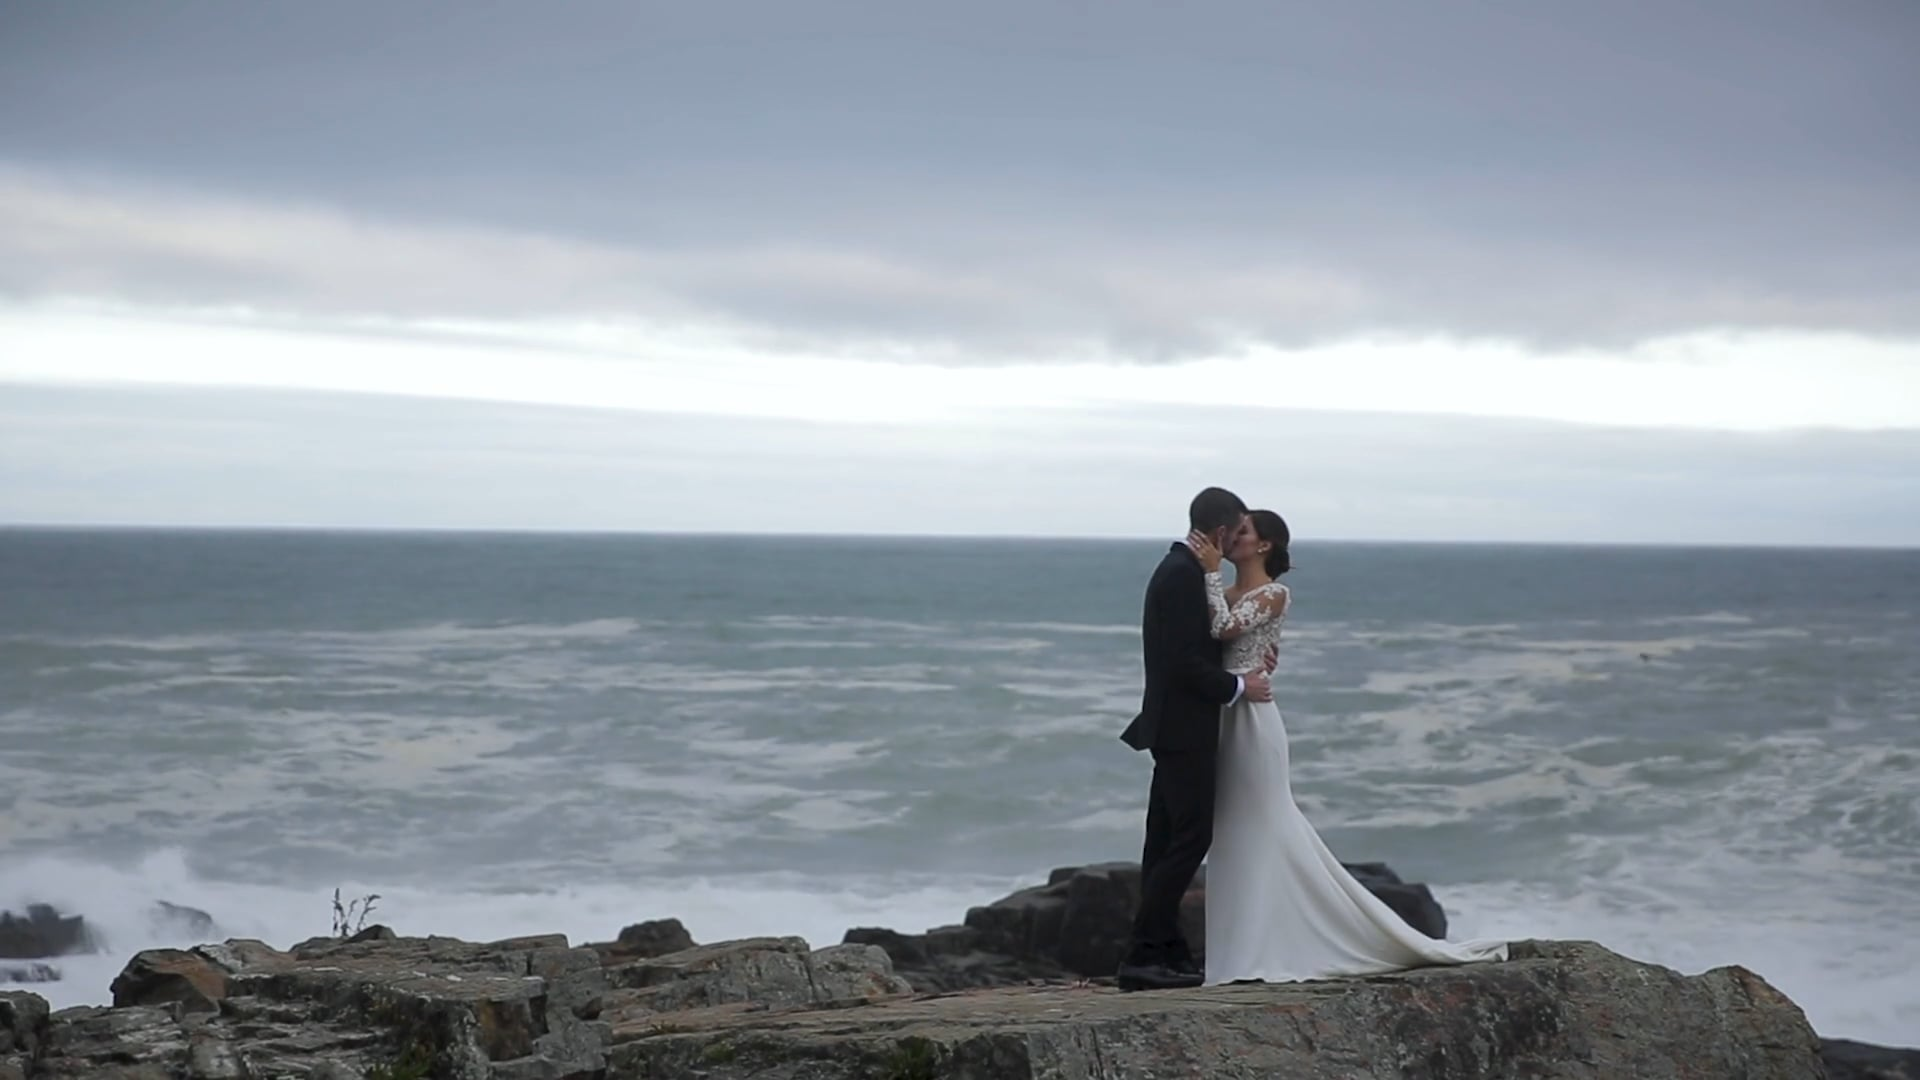 Mary & Brendan's Wedding Film at the Cliff House (York, ME)